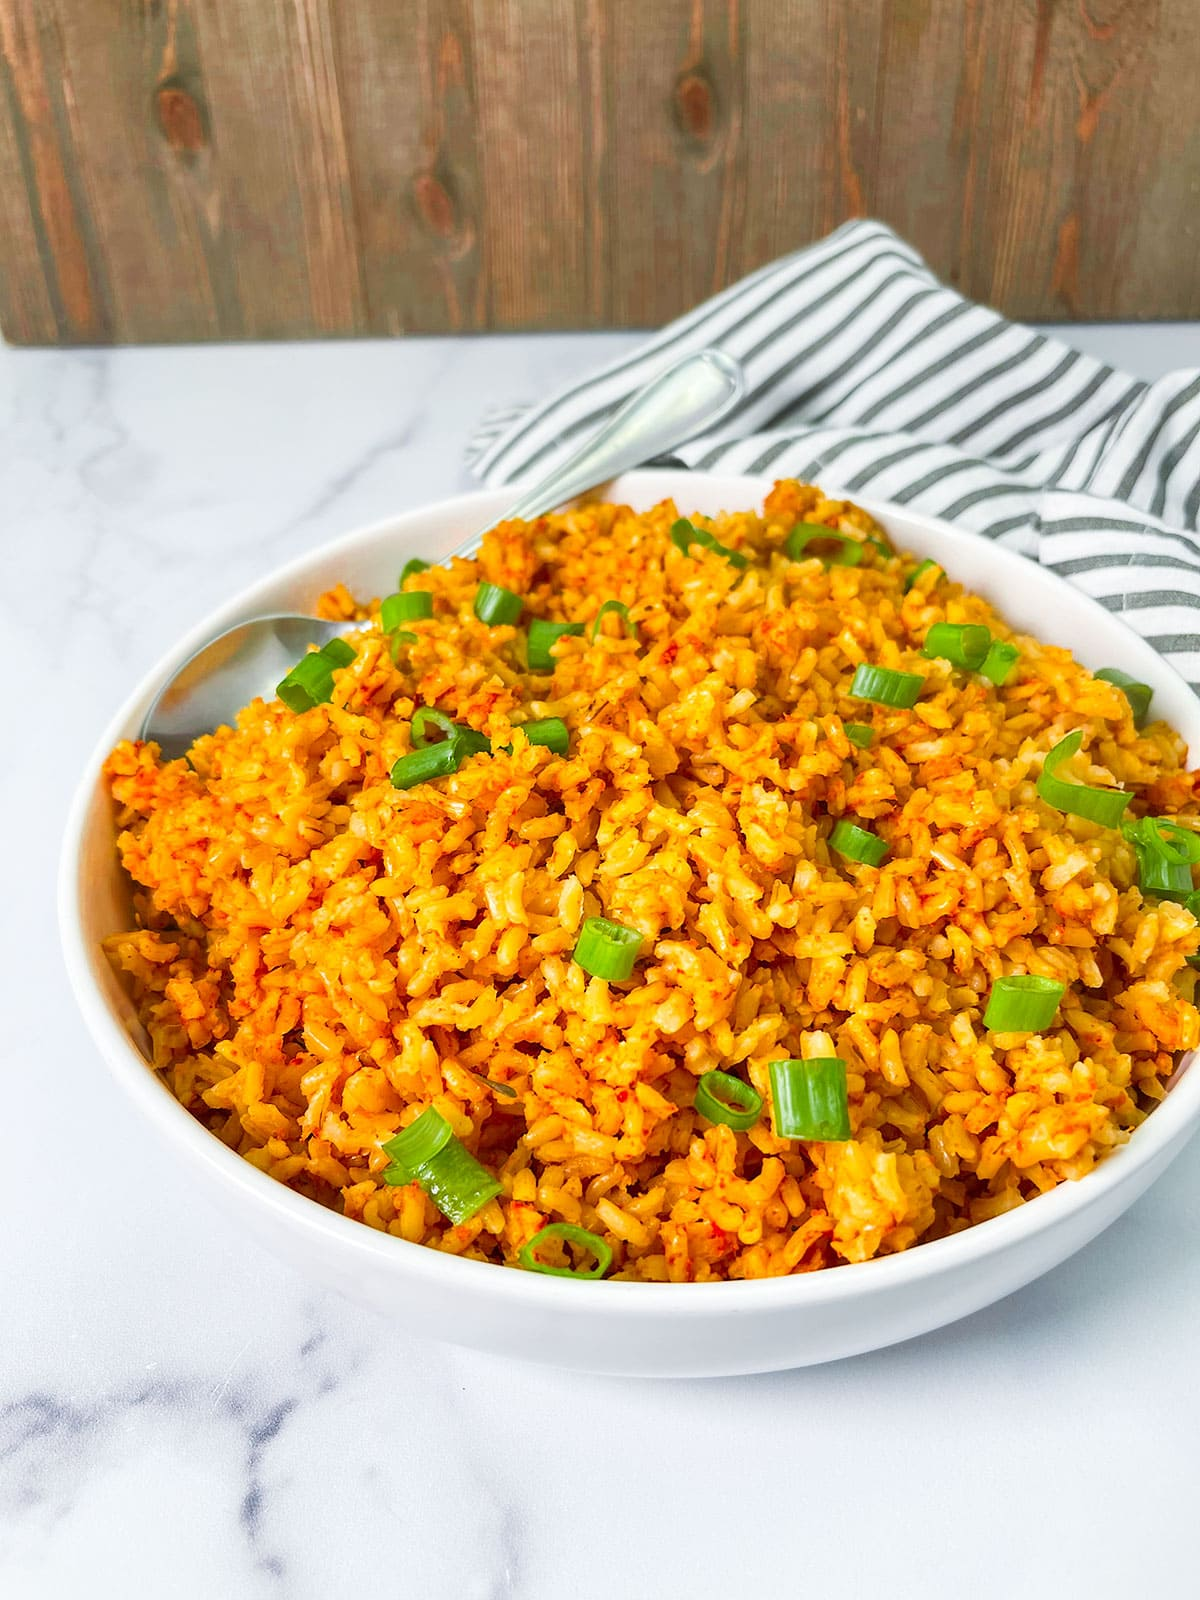 jollof rice in a white bowl on a white background with a stripe napkin